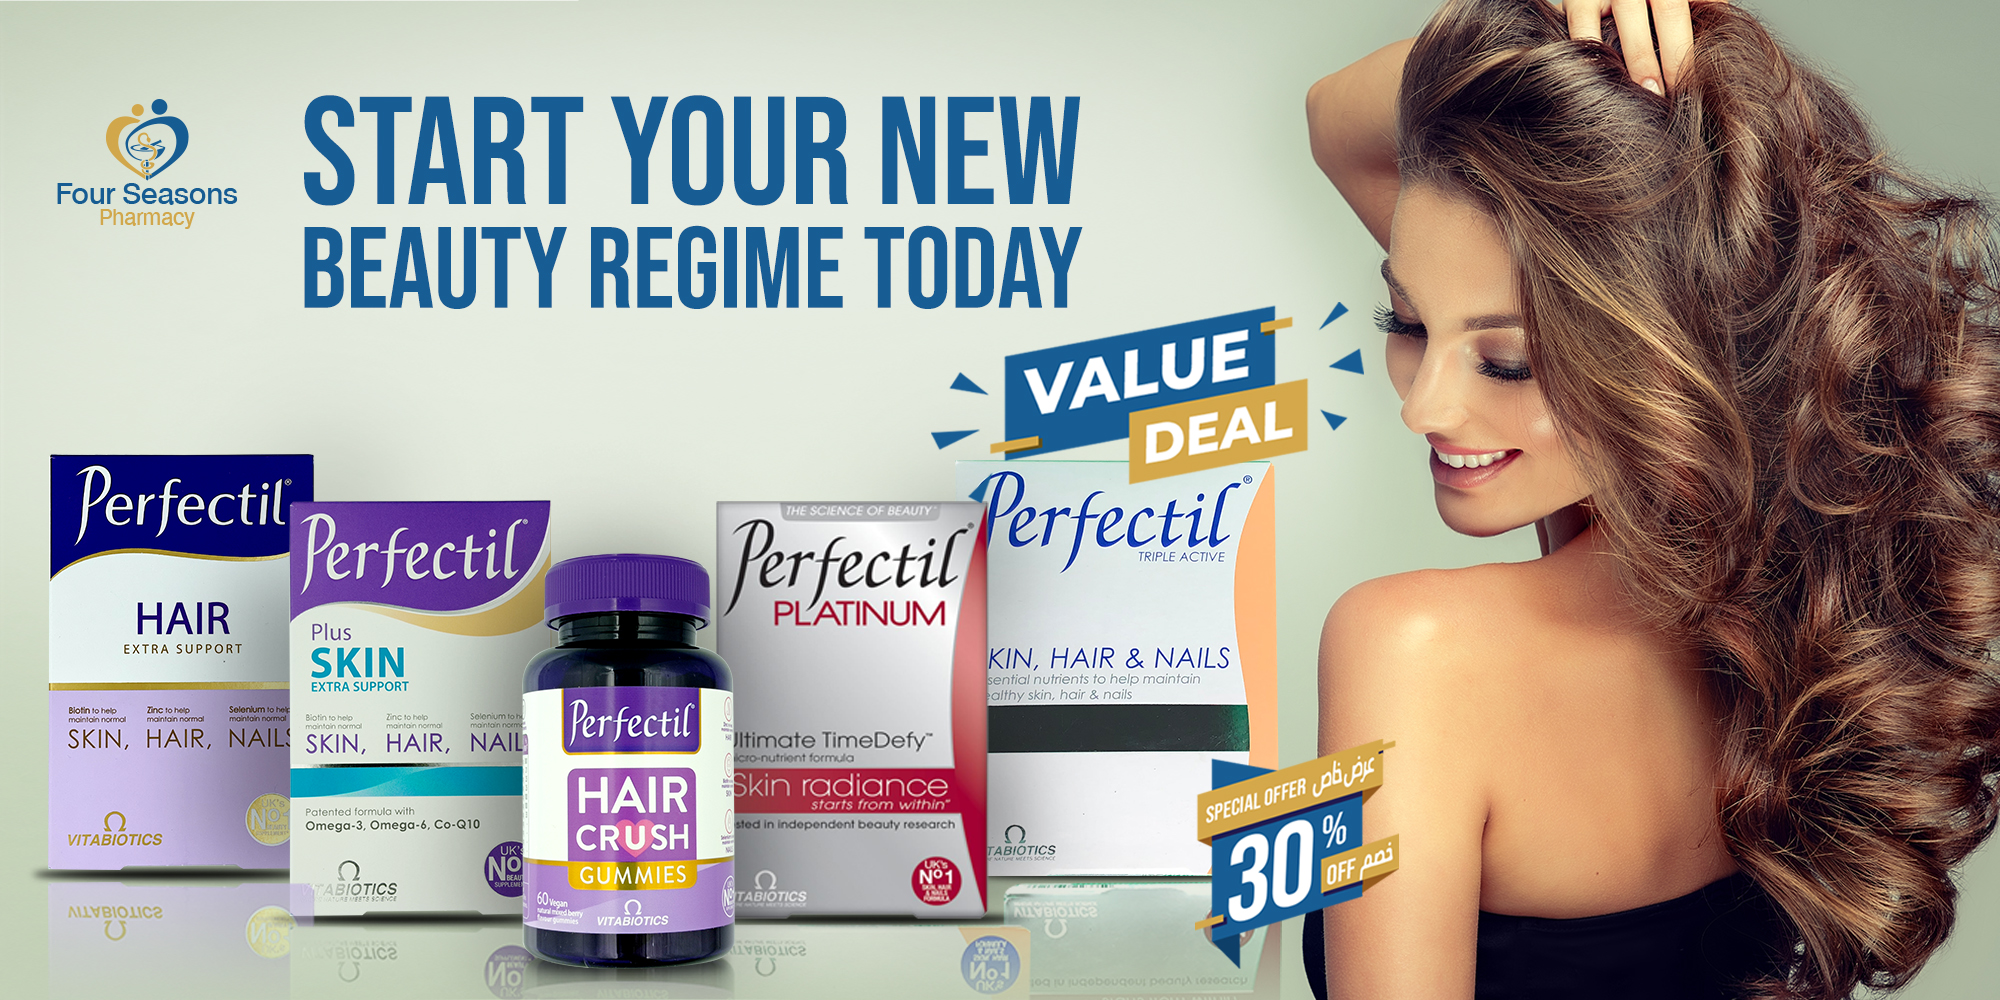 Start your new beauty regime today with Perfectil for Skin Hair and Nails